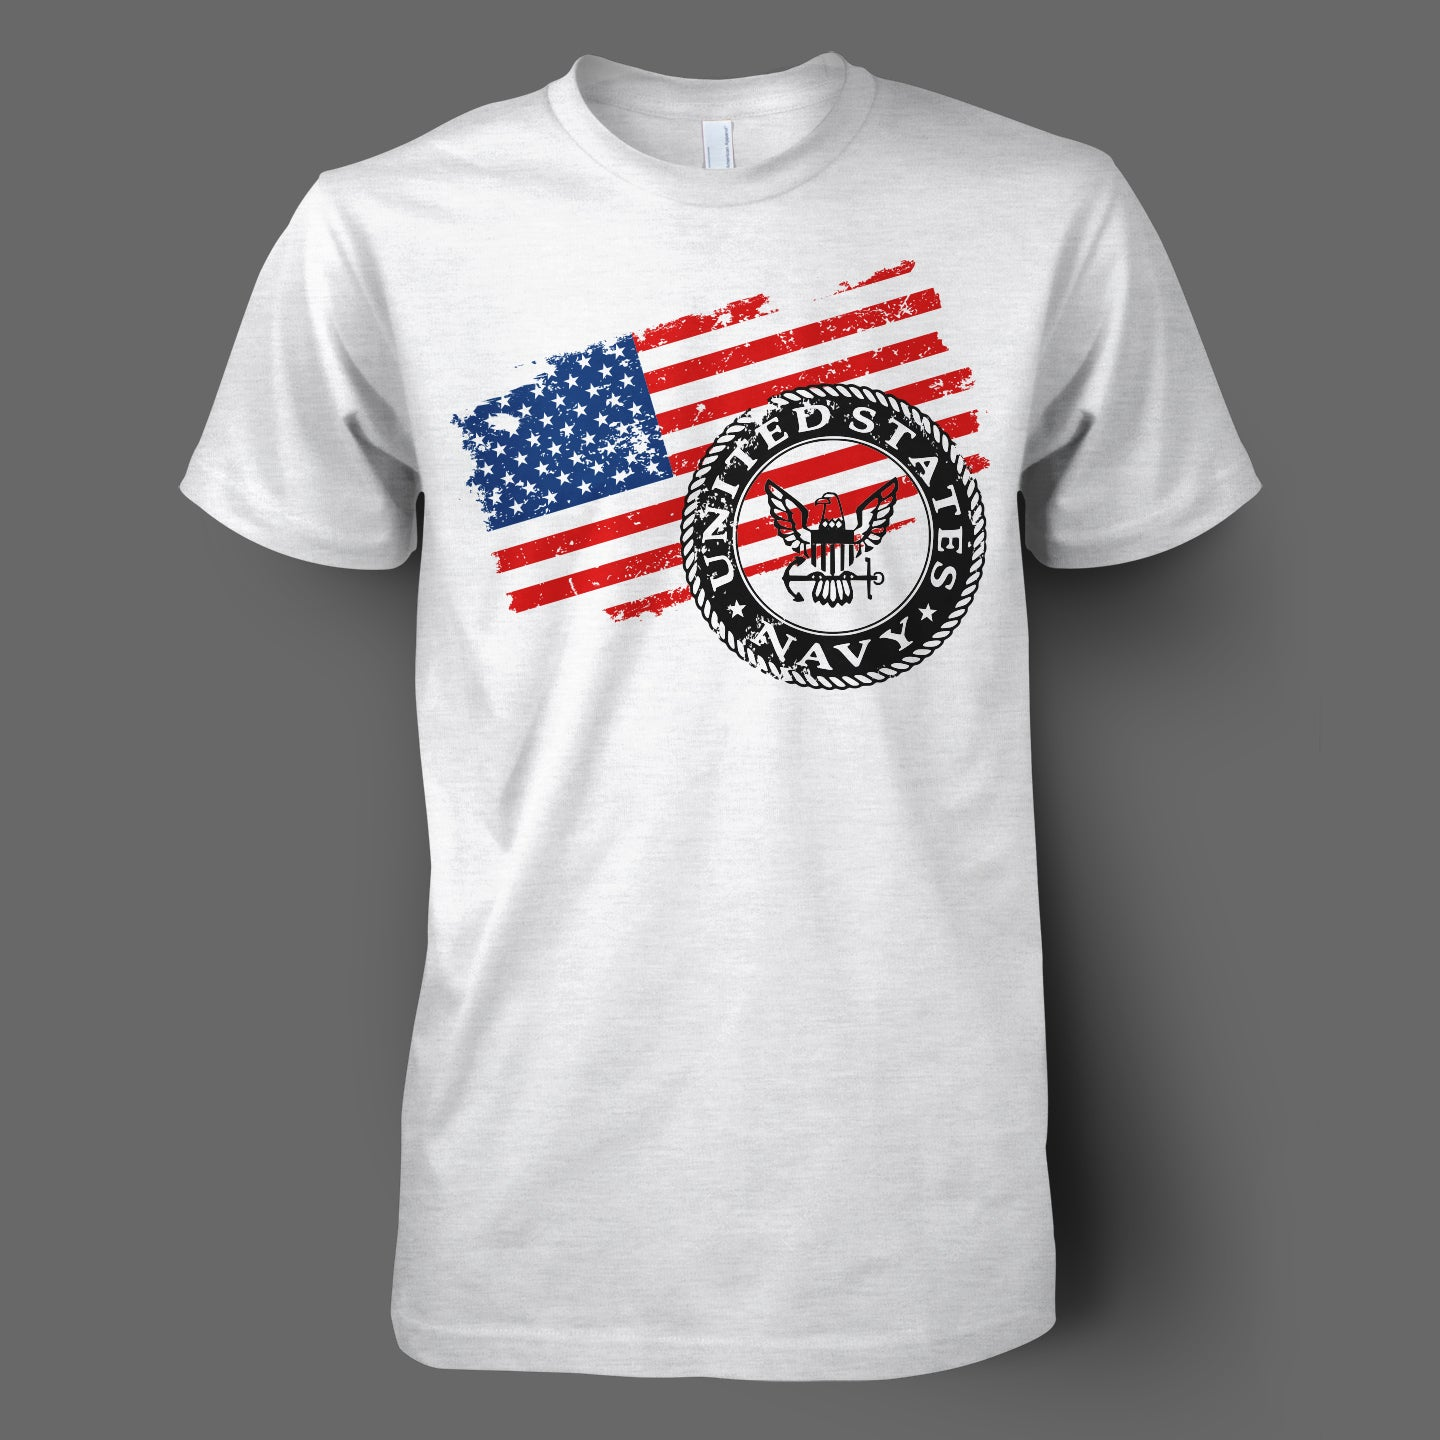 Men's US Navy Tee